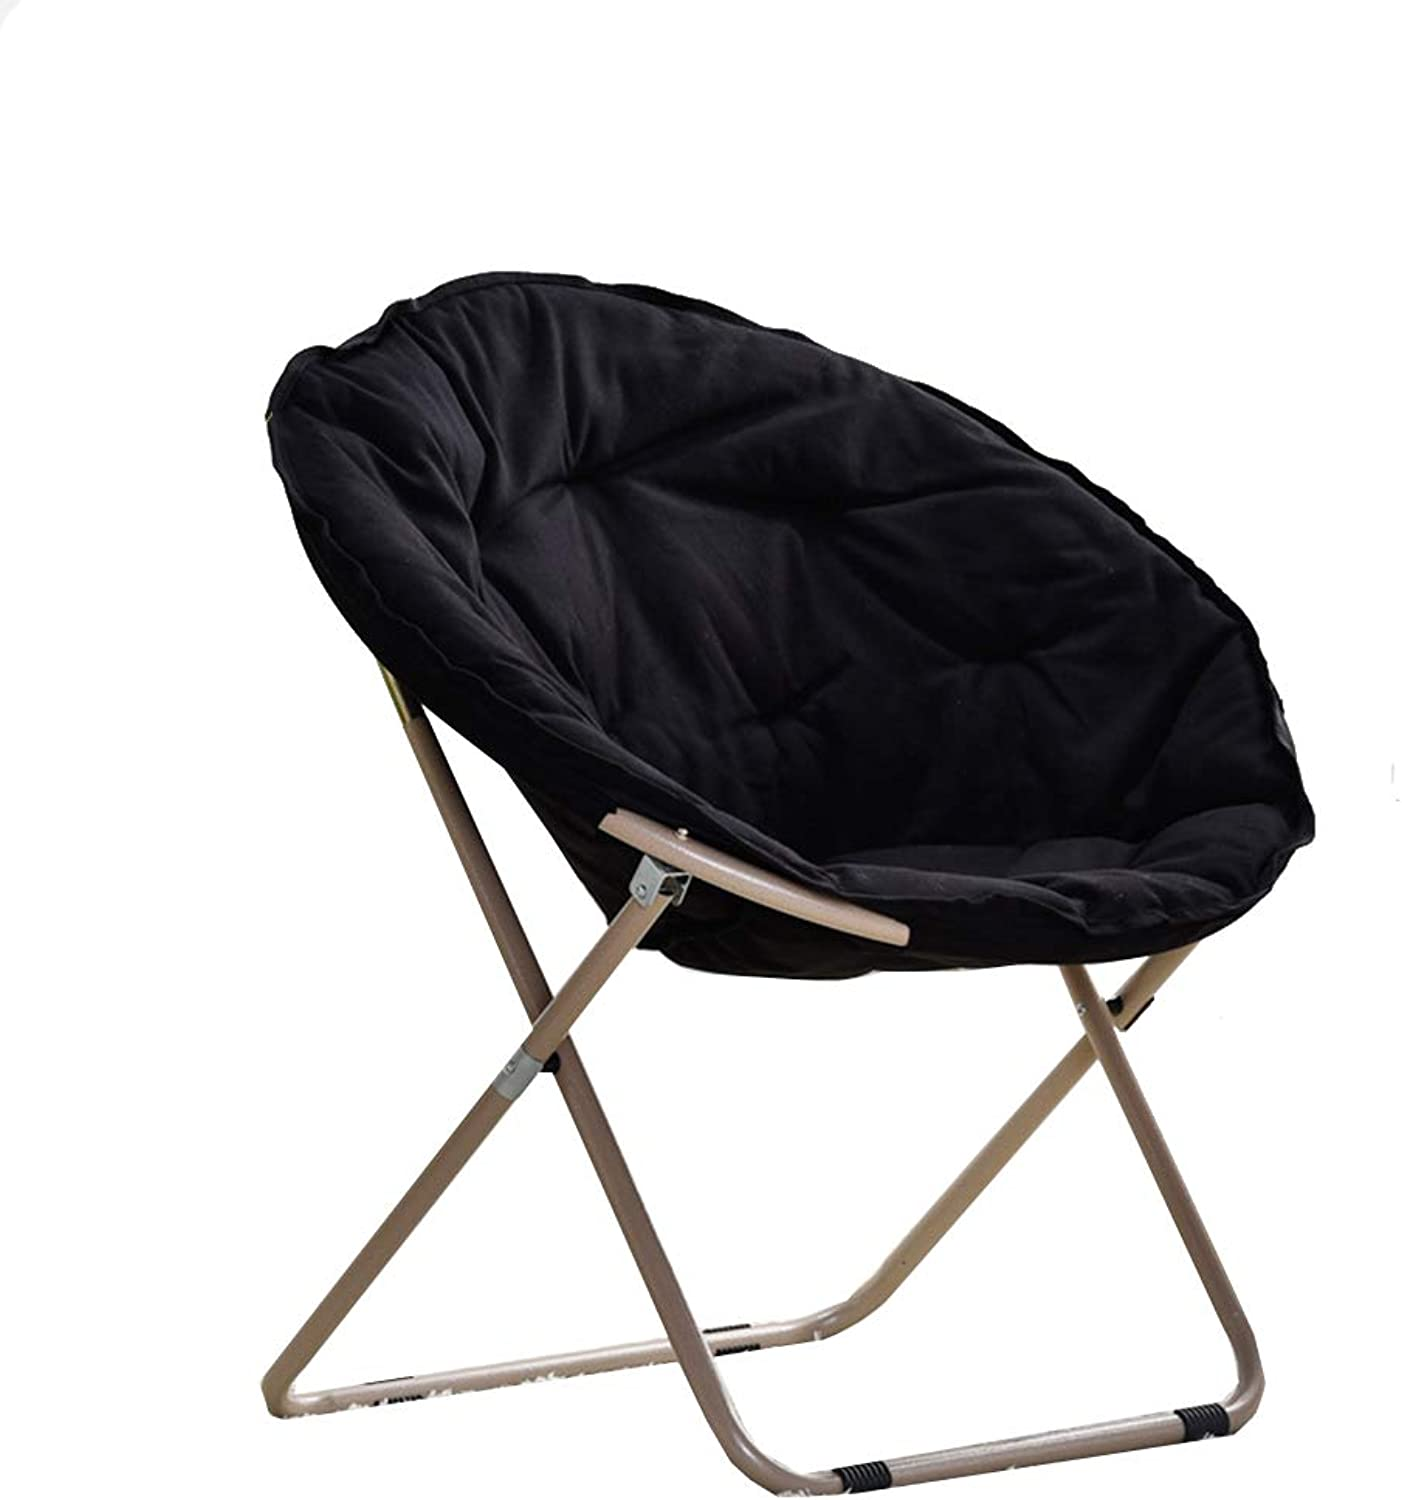 Big Comfy Chair Lazy Chair Balcony Folding Chair Camping Moon Chair Large (color   A)